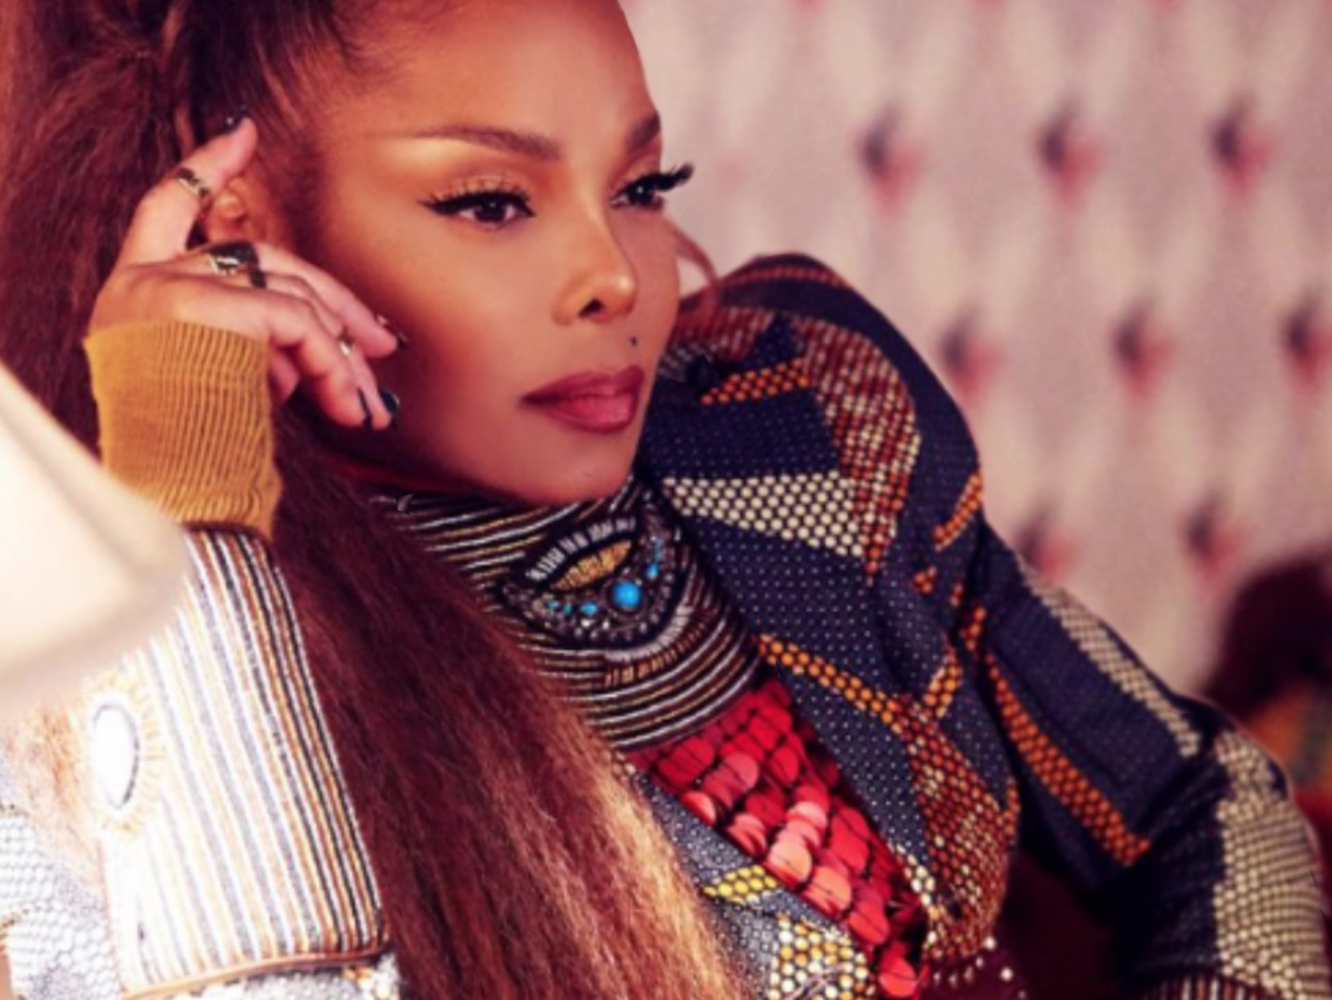 Janet Jackson & Radiohead Masuk Dalam Daftar Rock And Roll Hall Of Fame Class Of 2019